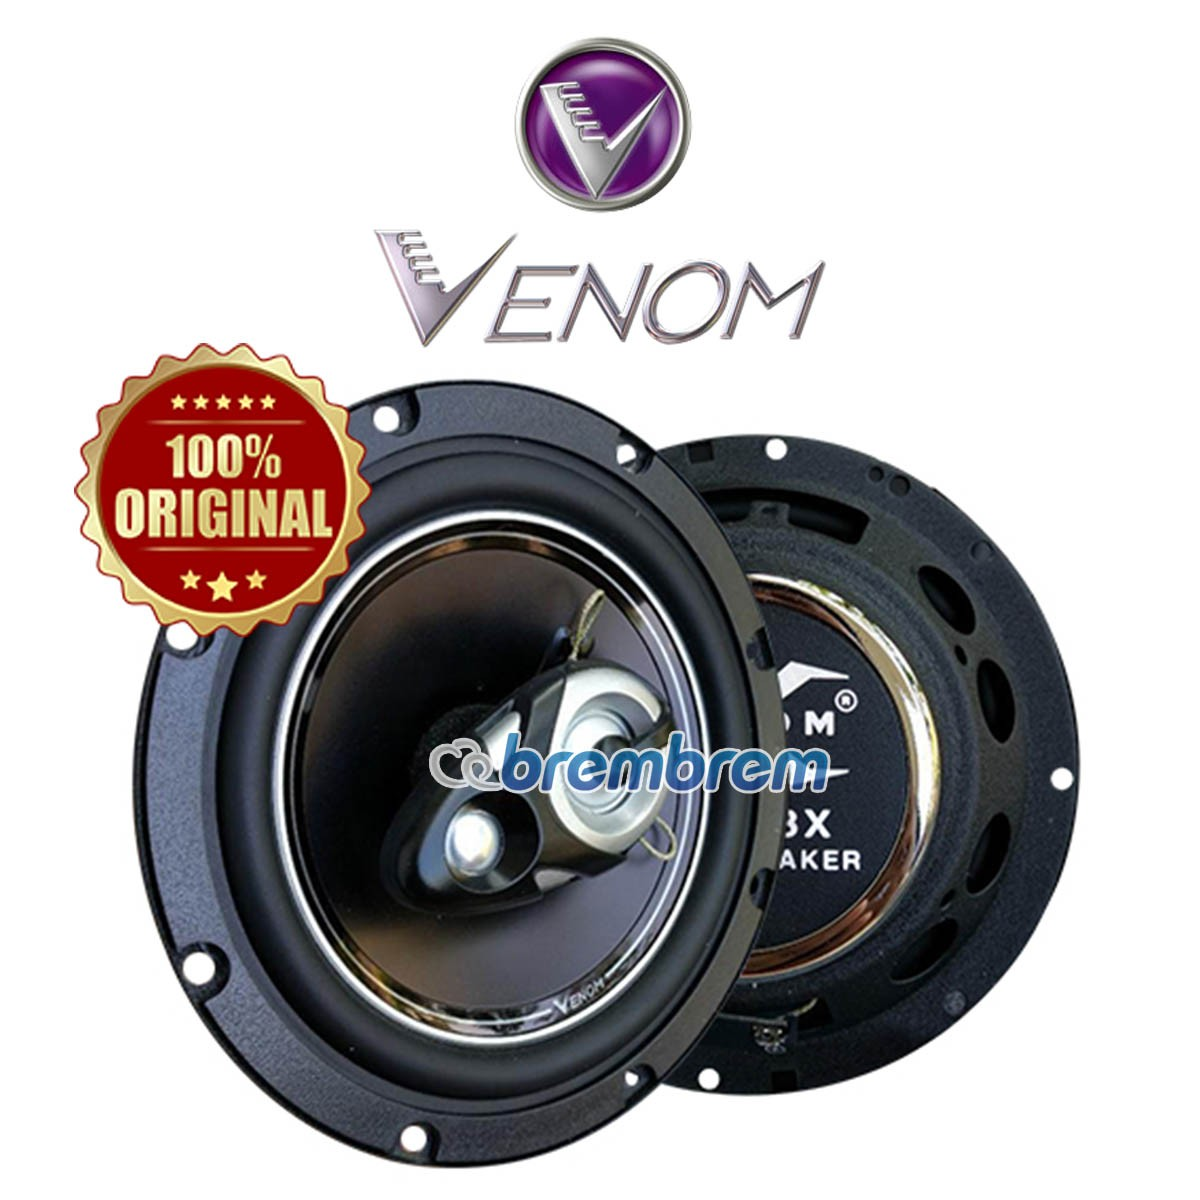 VENOM NEW X SERIES VX 603 - SPEAKER COAXIAL